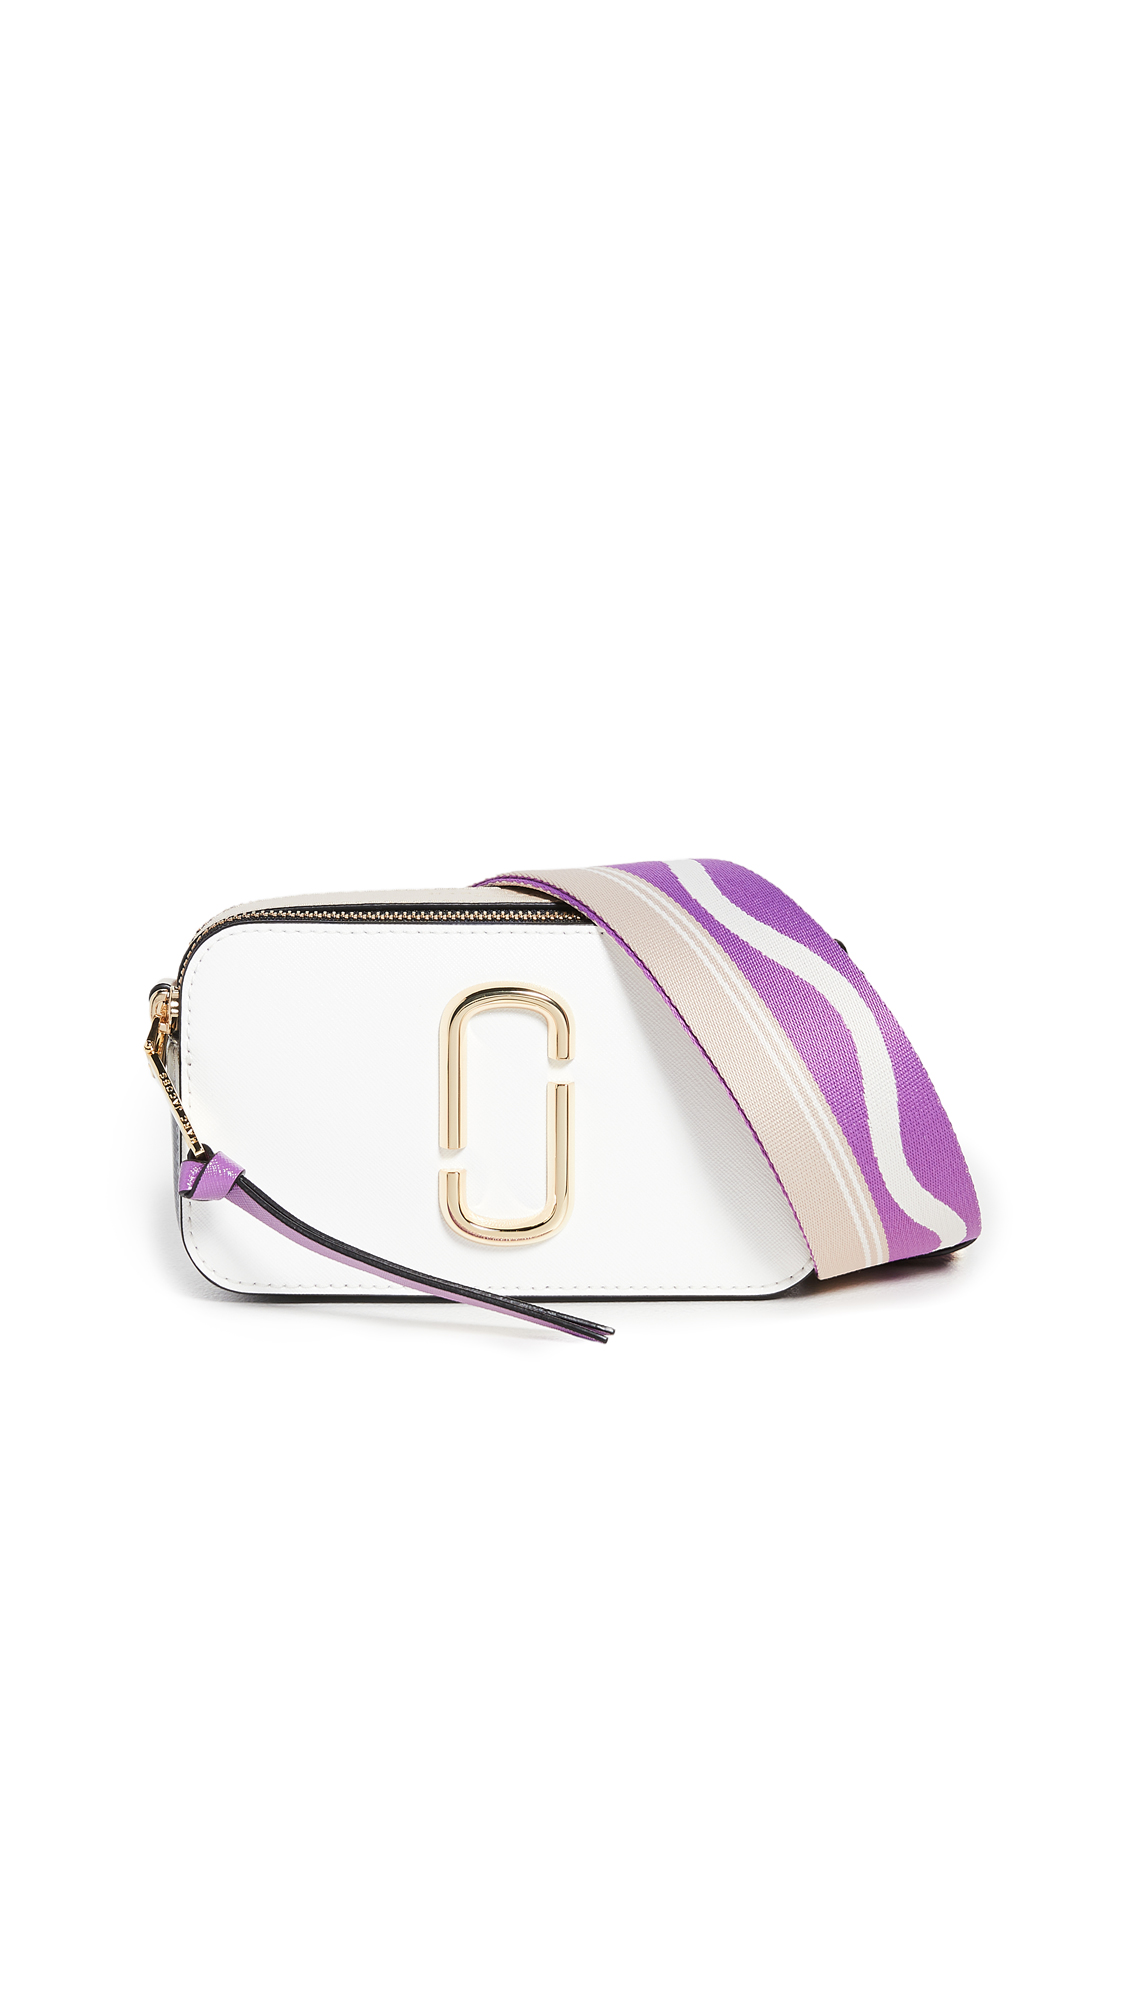 The Marc Jacobs Leathers SNAPSHOT CAMERA BAG